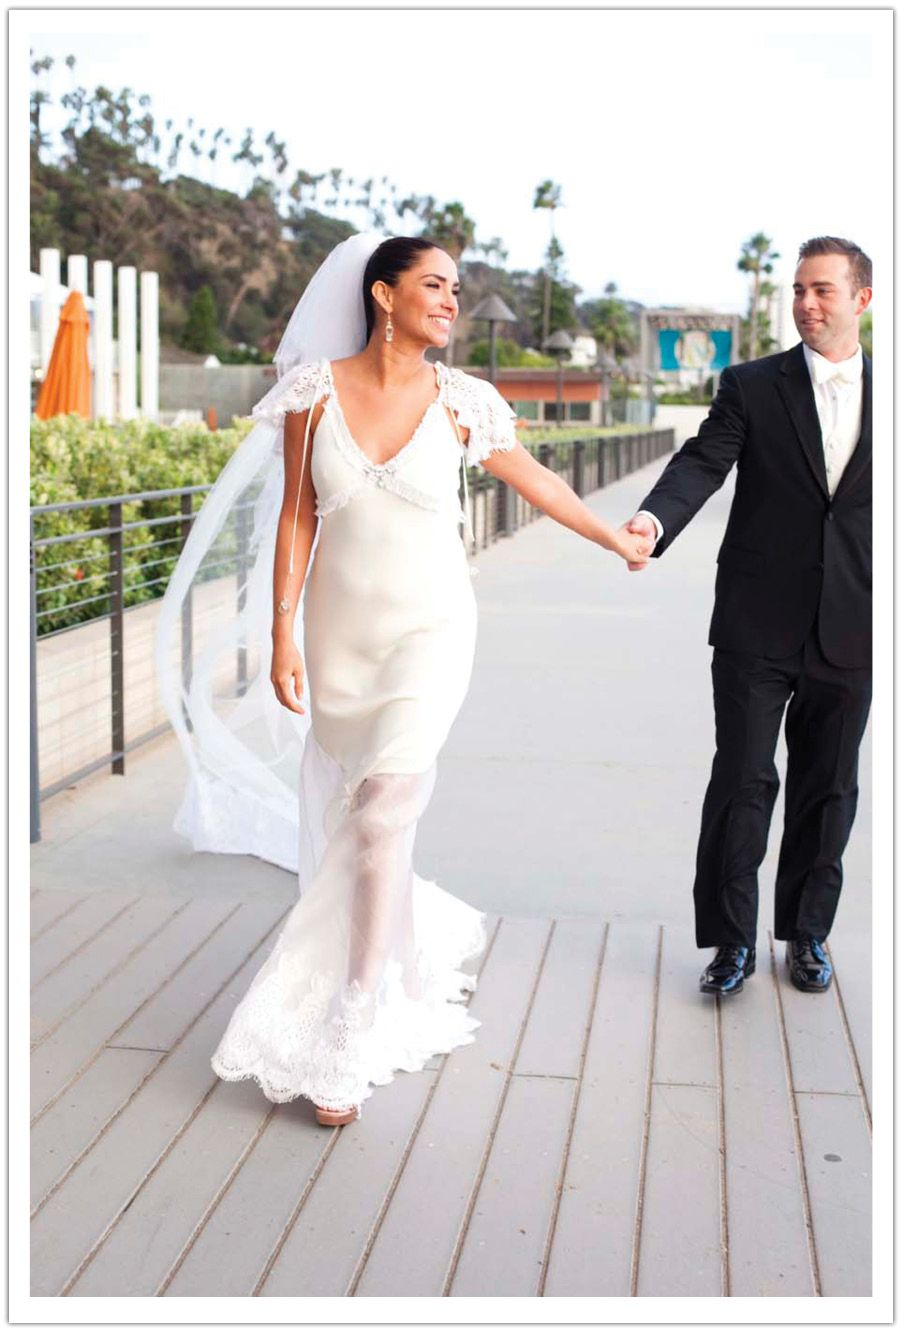 To customize the brideus dress allyson simone added butterfly